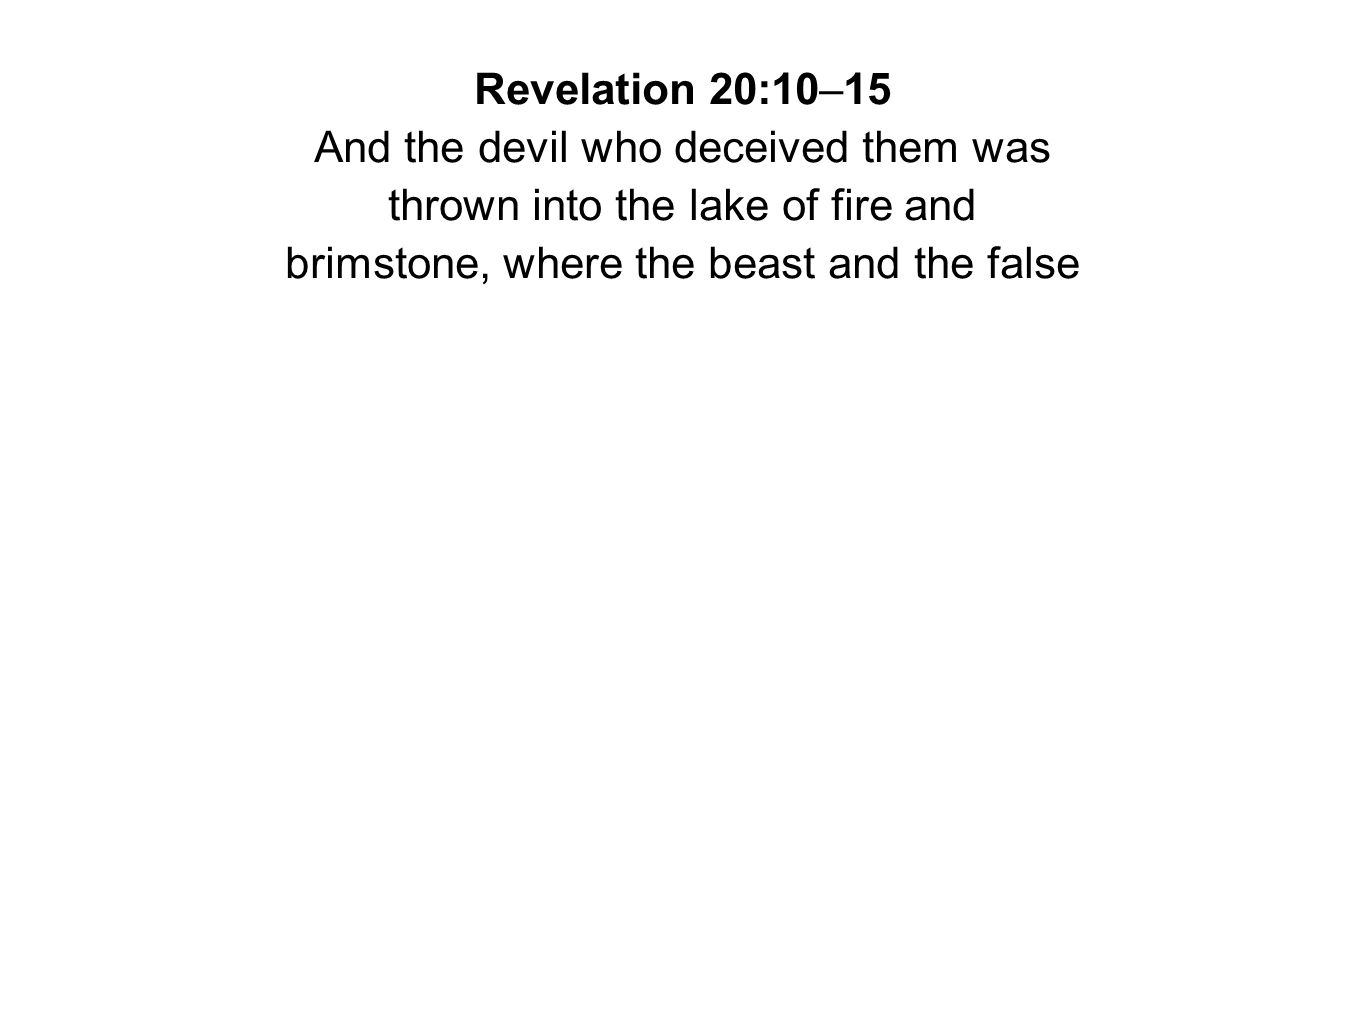 Revelation 20:10–15 And the devil who deceived them was thrown into the lake of fire and brimstone, where the beast and the false